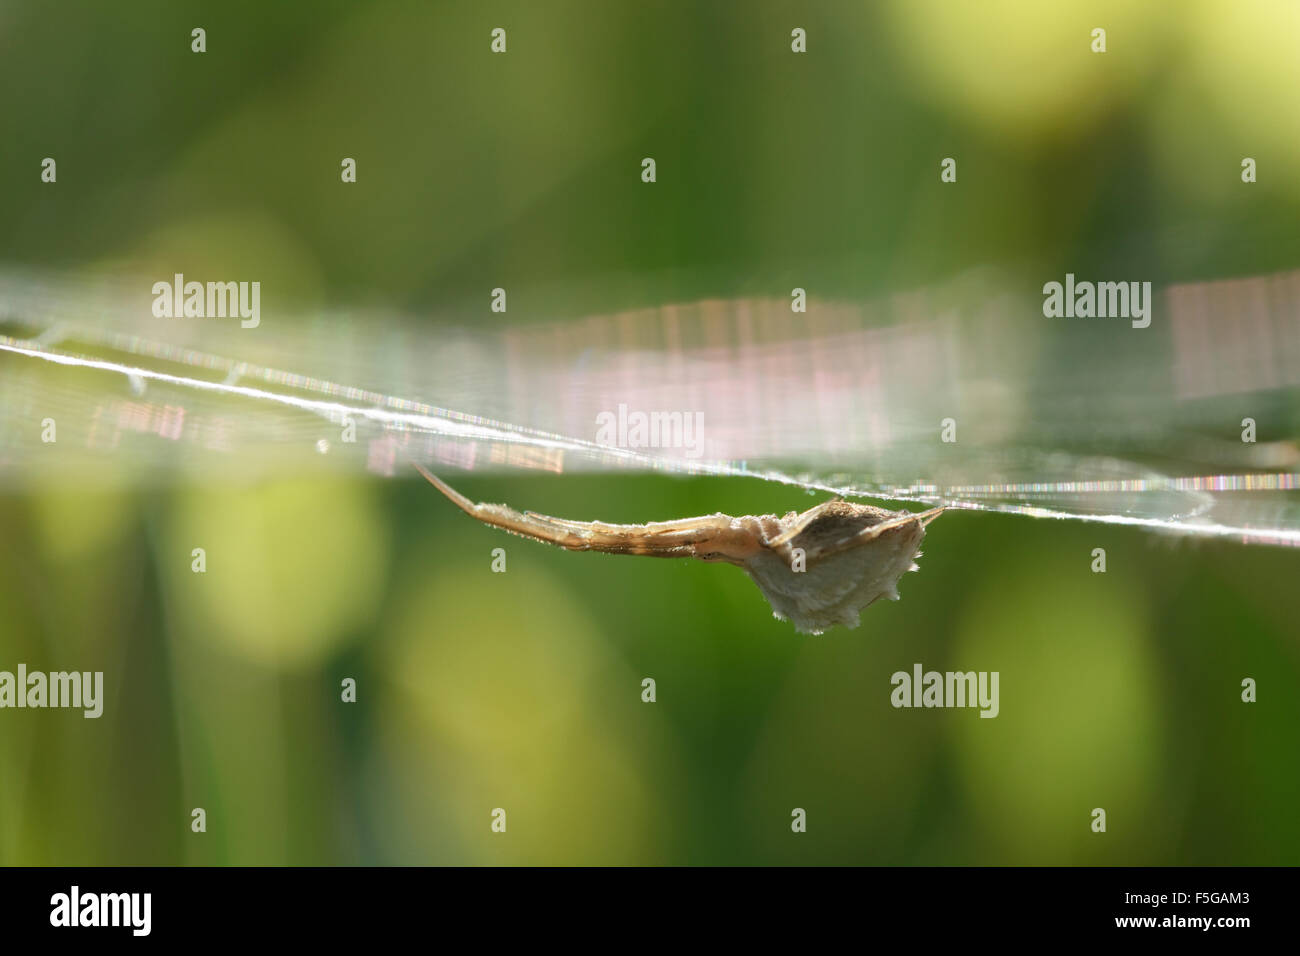 Feather-legged sp. Uloborus walckenaerius adult spider hanging from its web in grassland. Lemnos island, Greece - Stock Image